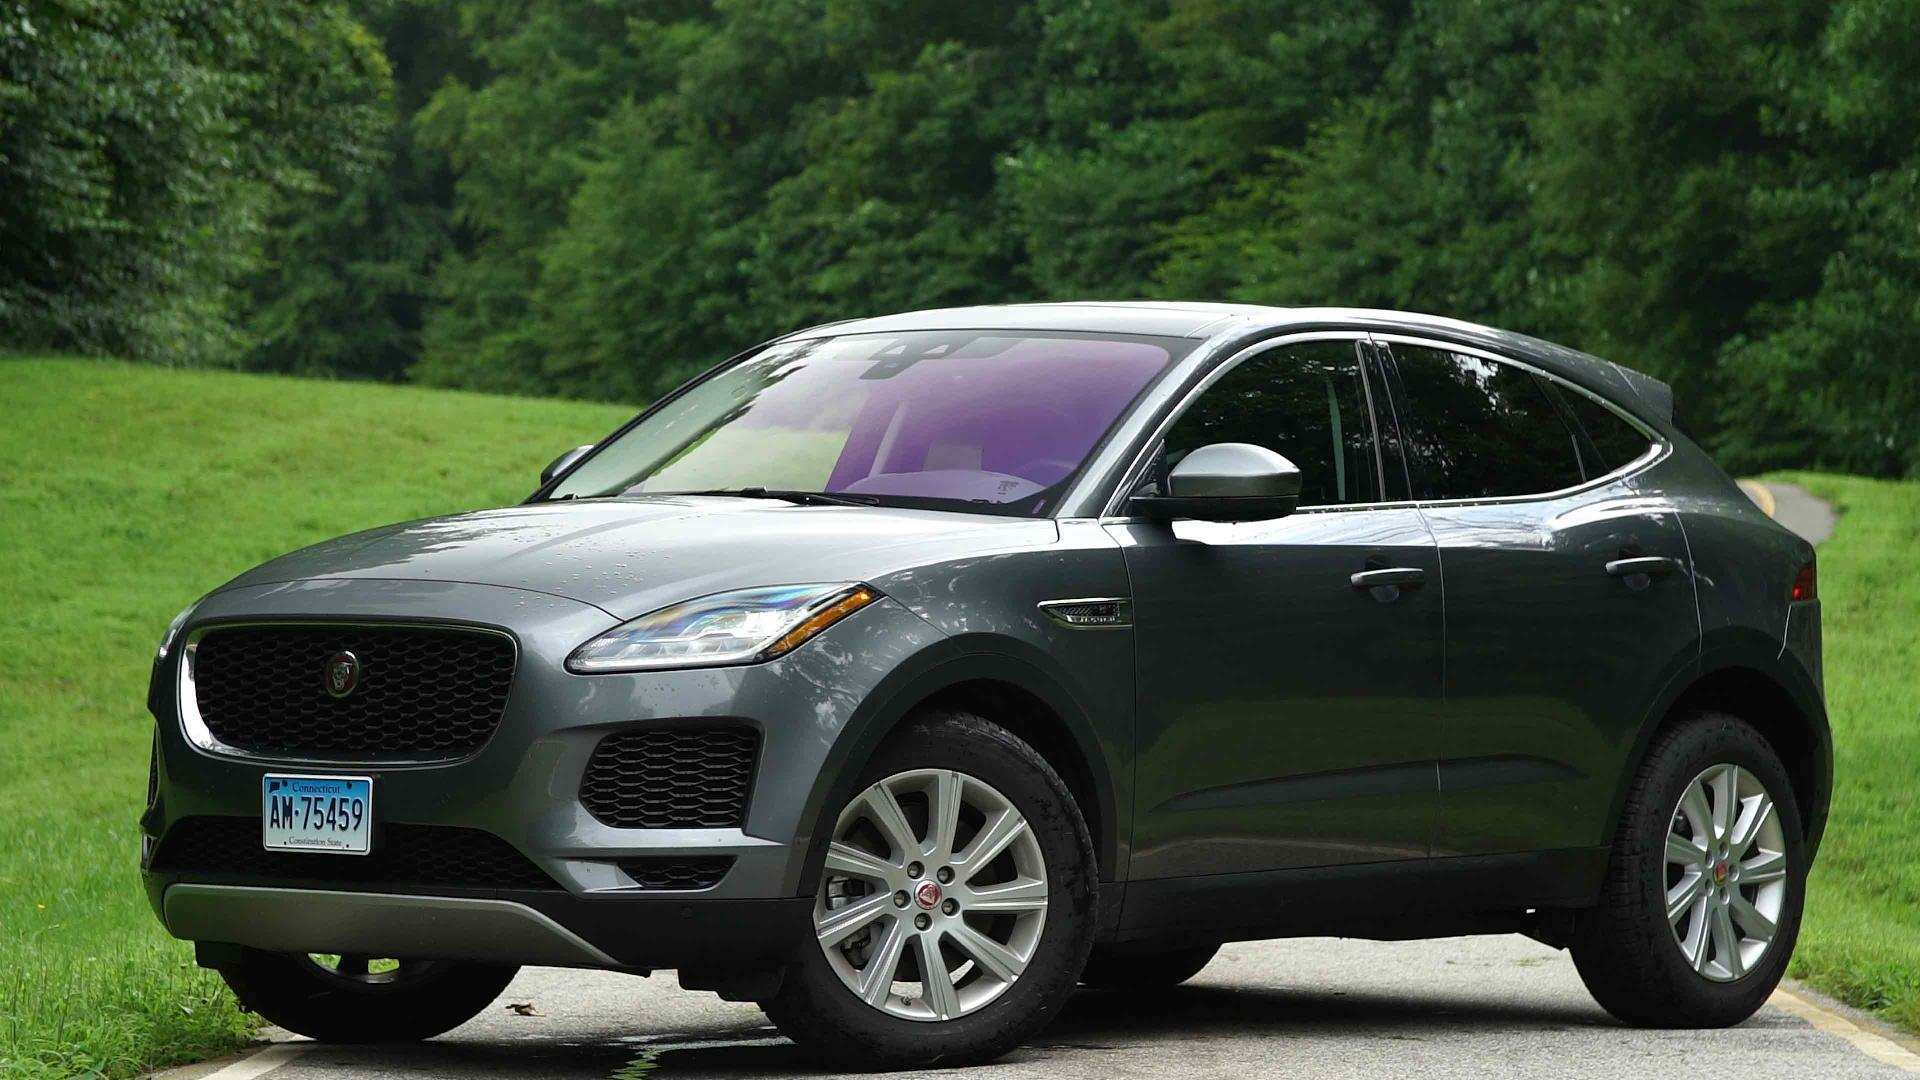 72 Concept of 2019 Jaguar E Pace Price Images with 2019 Jaguar E Pace Price